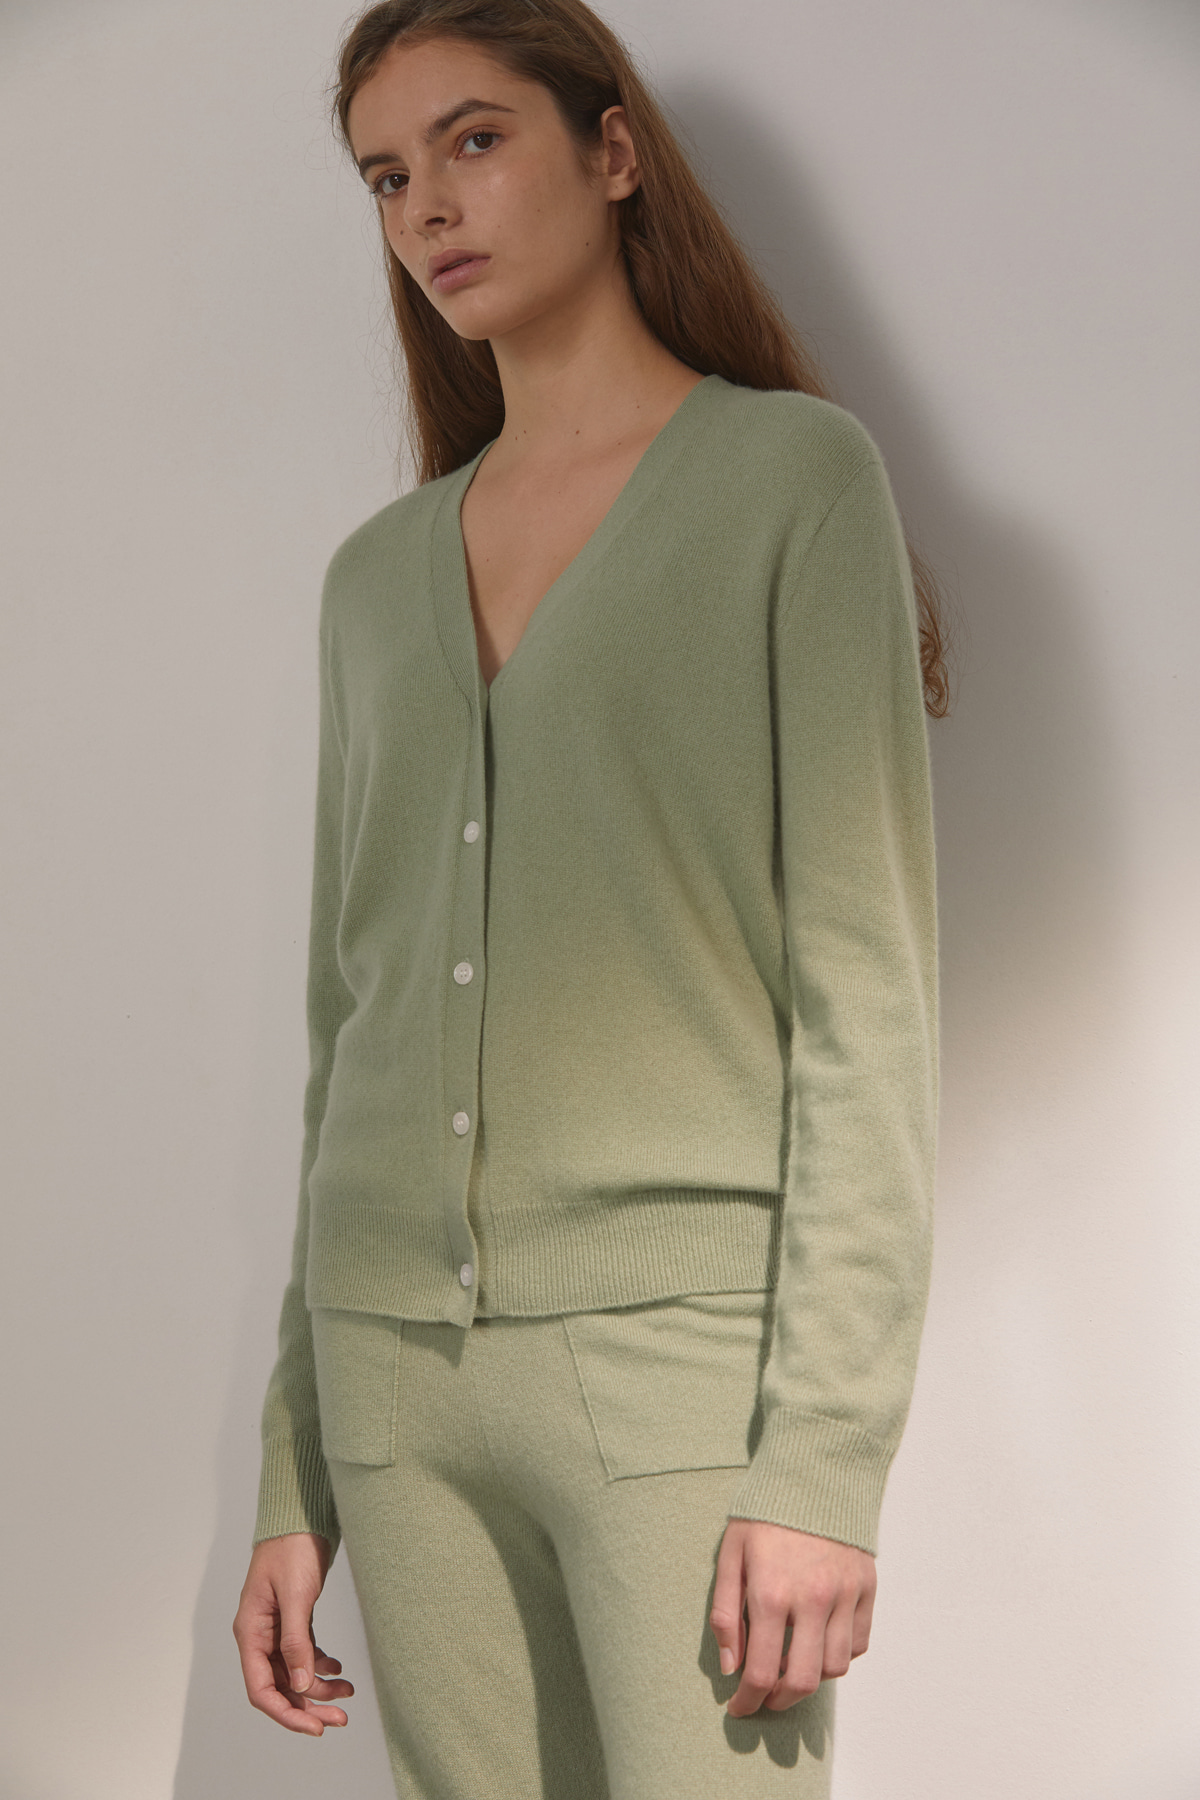 DEMERE CASHMERE 100 CARDIGAN (LIGHT GREEN)